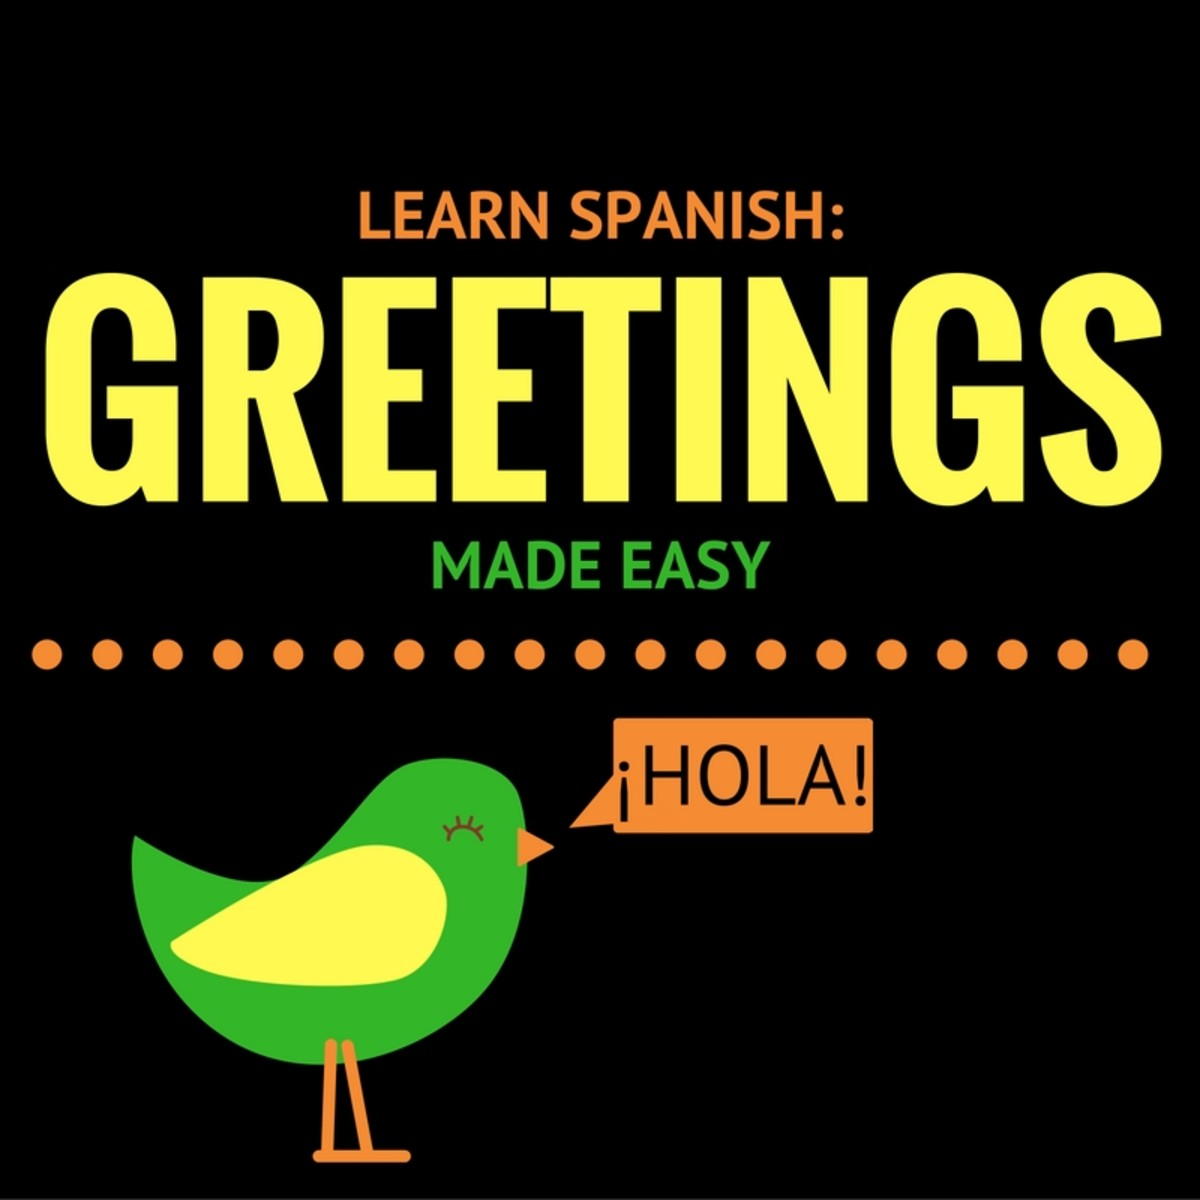 Learn Spanish: Greetings